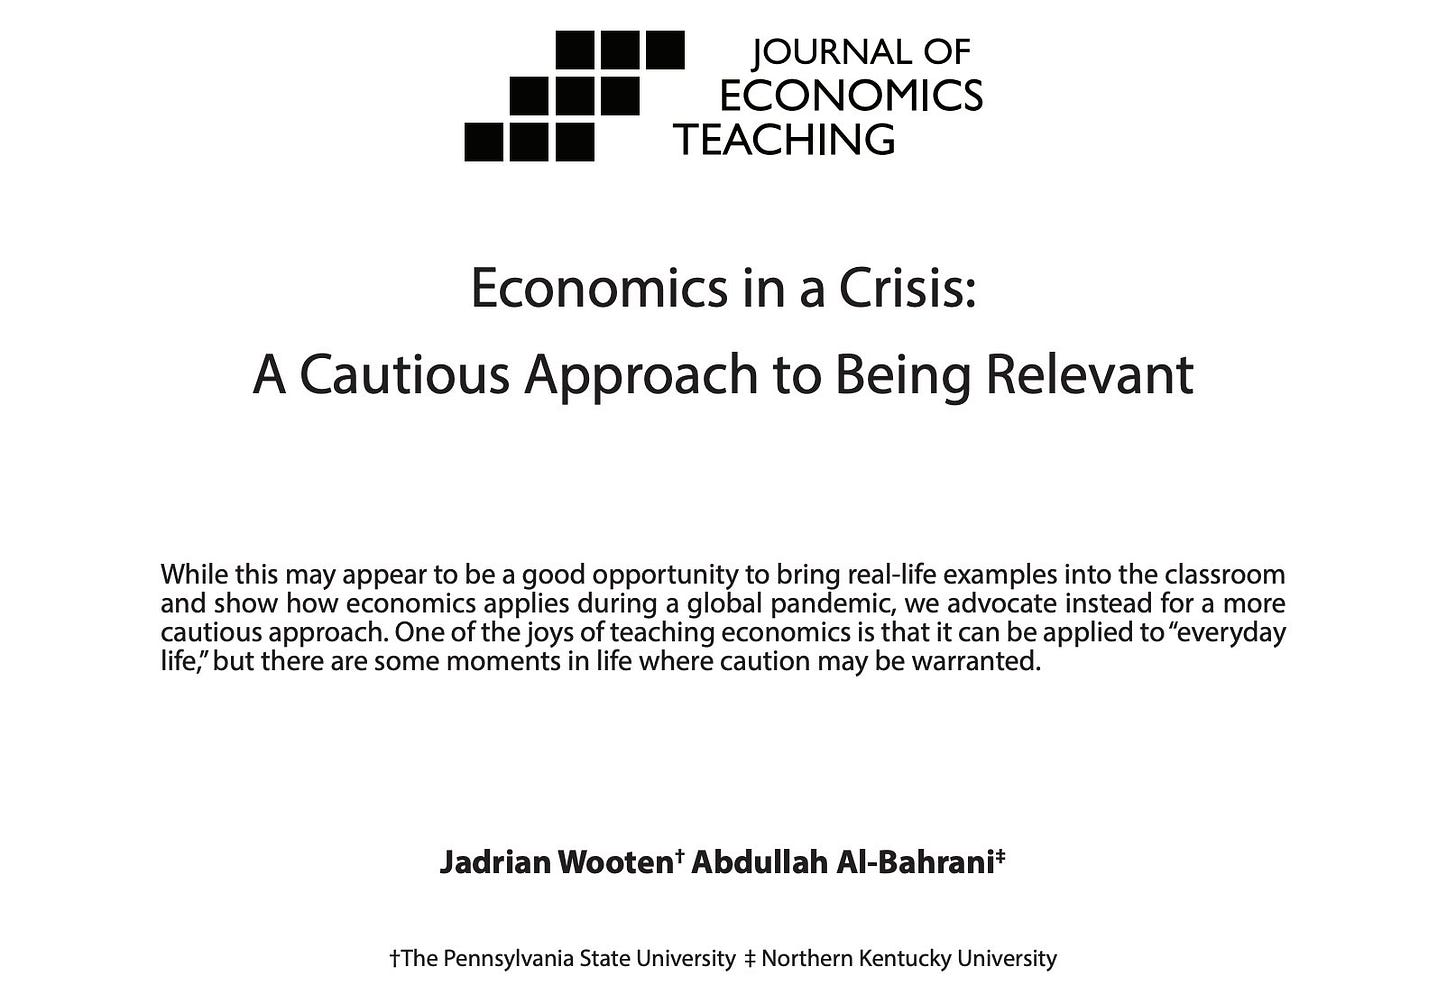 """A screenshot of a paper titled """"Economics in a Crisis: A Cautious Approach to Being Relevant"""" published in the Journal of Economics Teaching."""